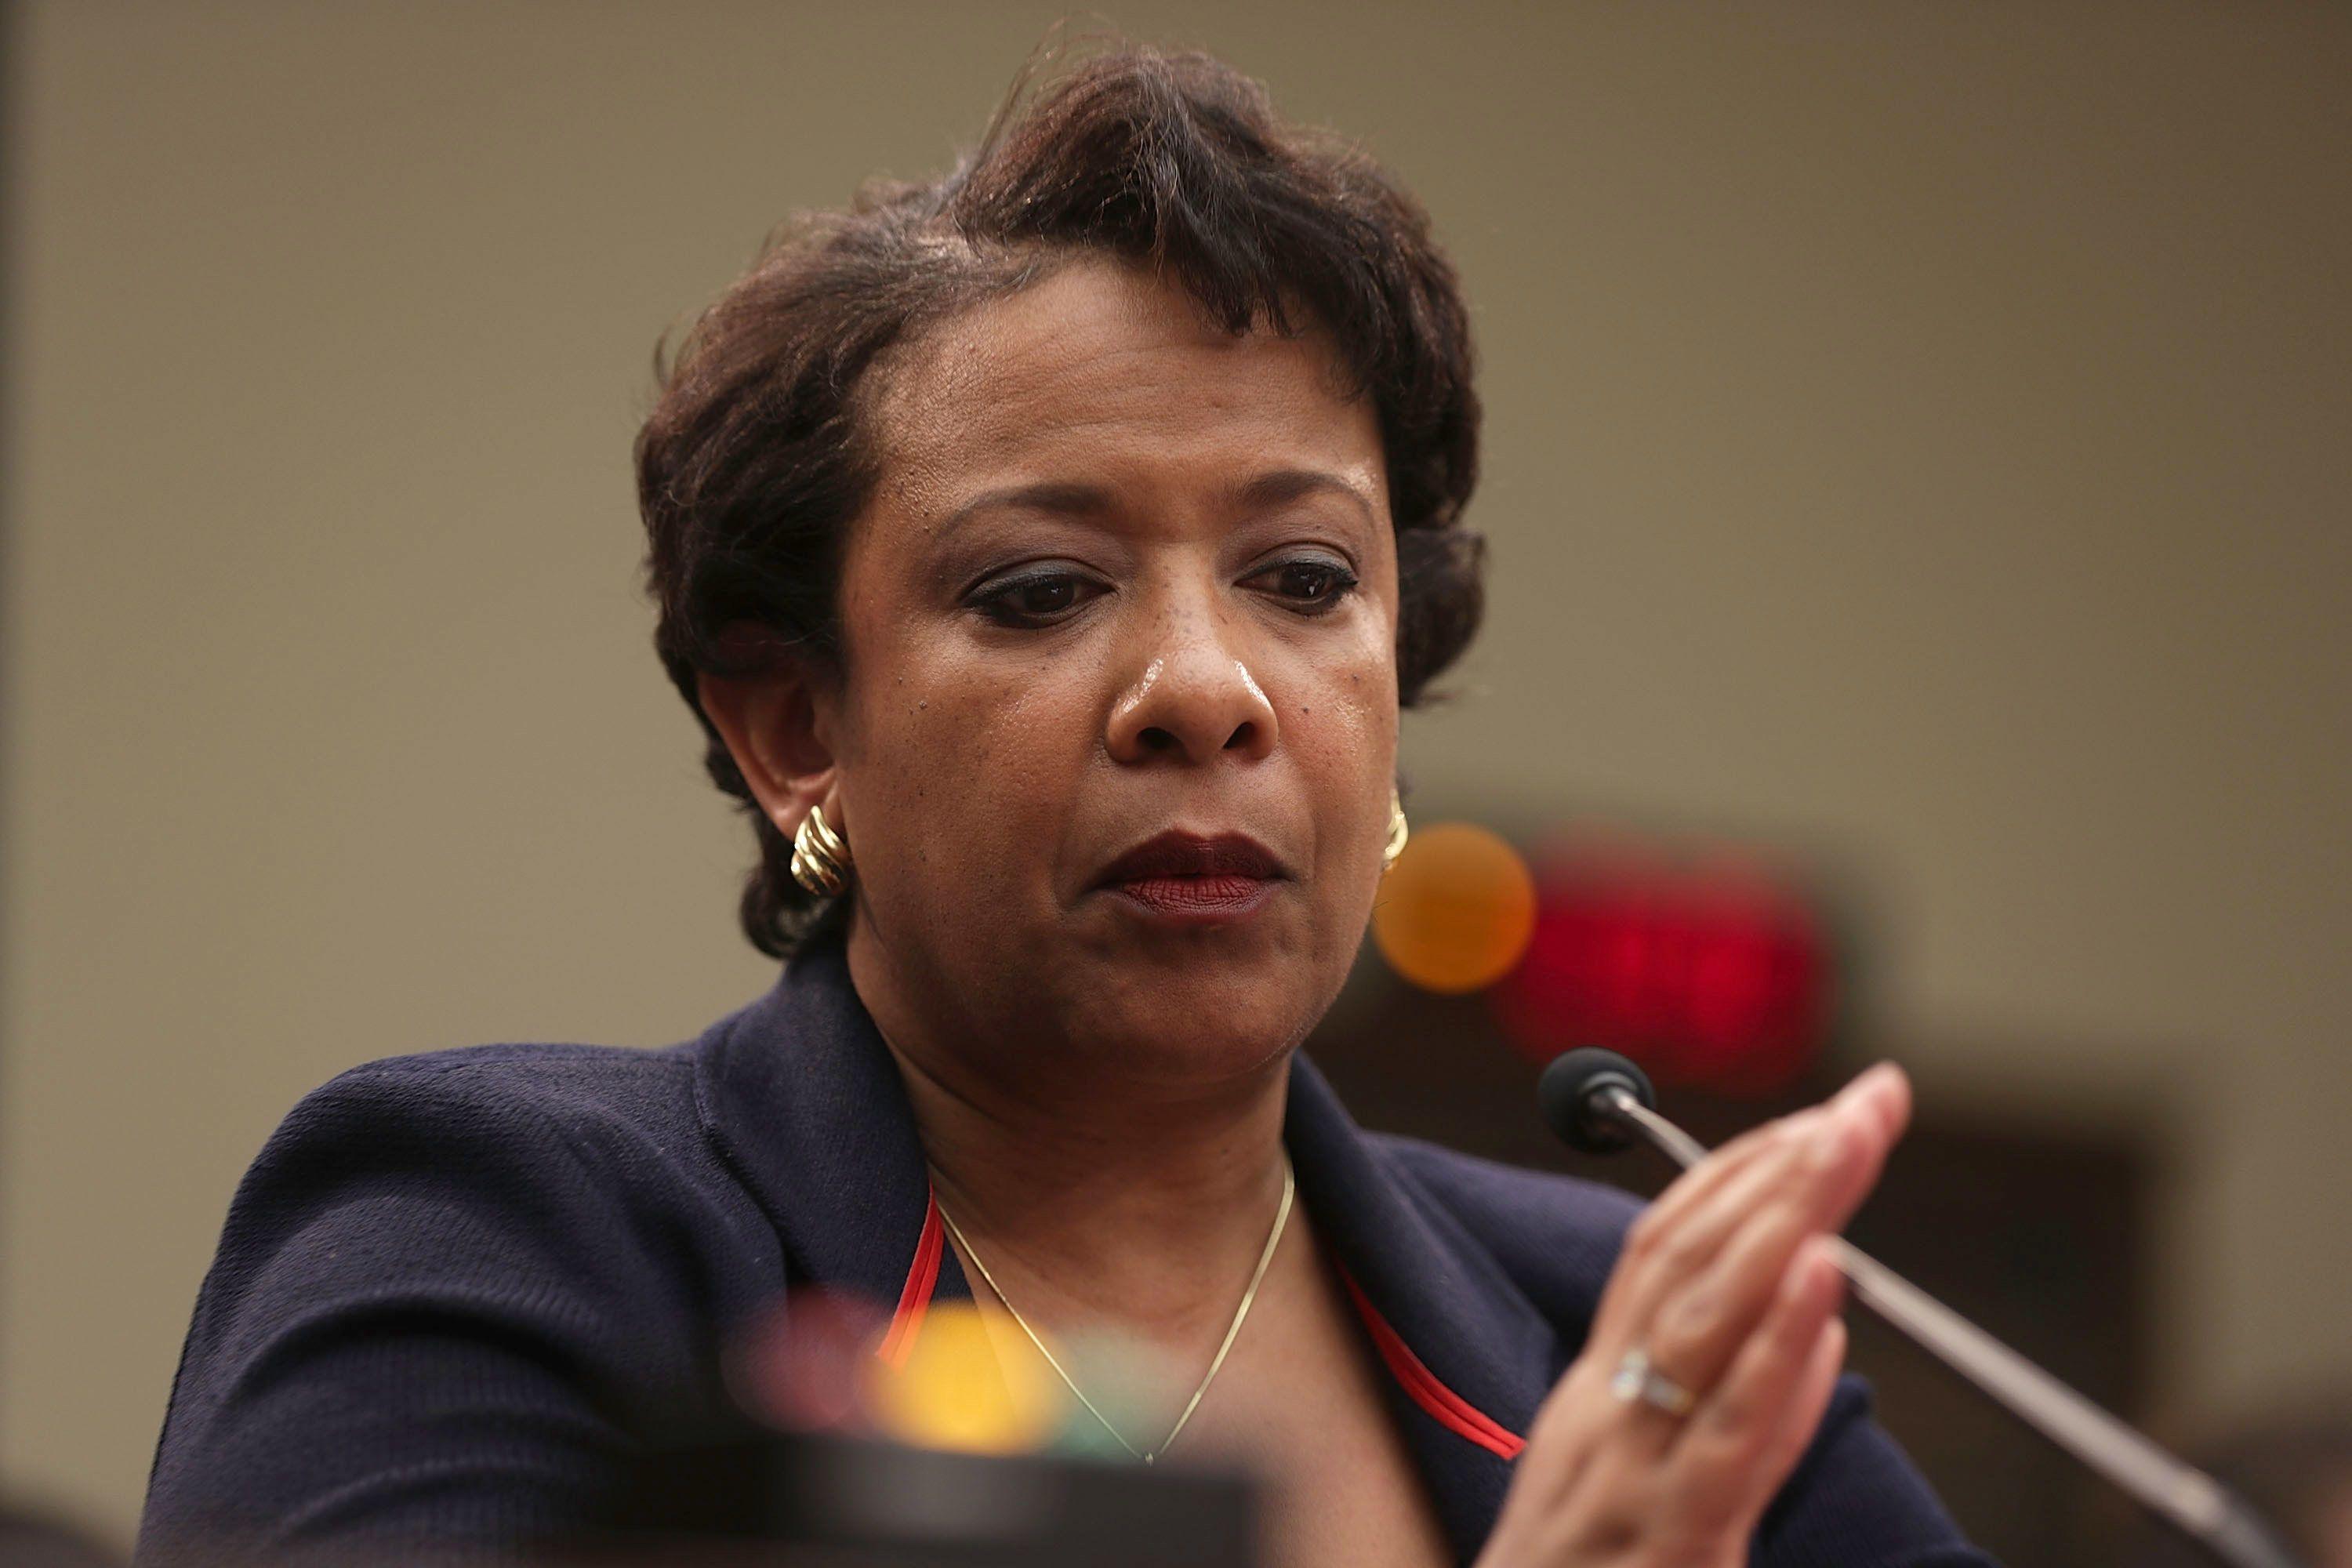 WASHINGTON, DC - JULY 12:  U.S. Attorney General Loretta Lynch testifies during a hearing before the House Judiciary Committee July 12, 2016 on Capitol Hill in Washington, DC. The committee held a hearing on 'Oversight of the Justice Department.'  (Photo by Alex Wong/Getty Images)